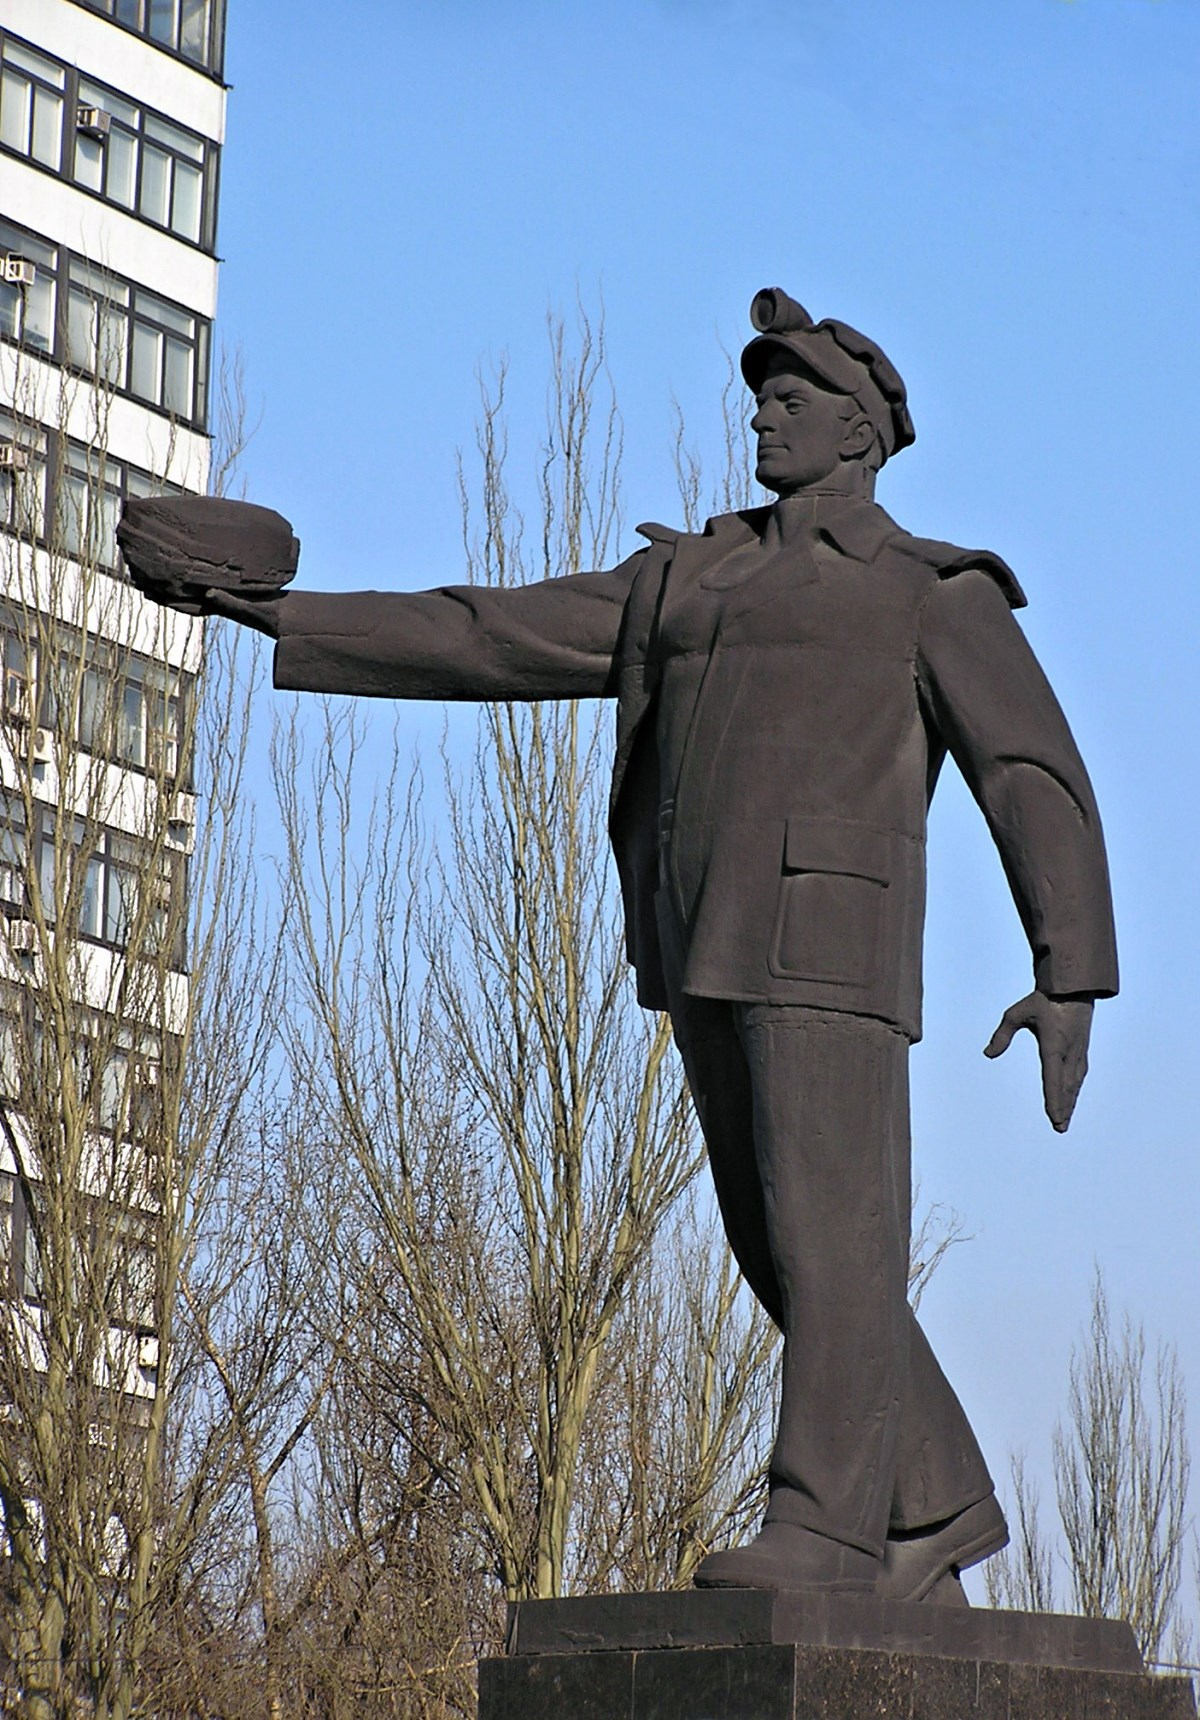 00 Donetsk. Monument to the Coal Miner. 31.08.14.